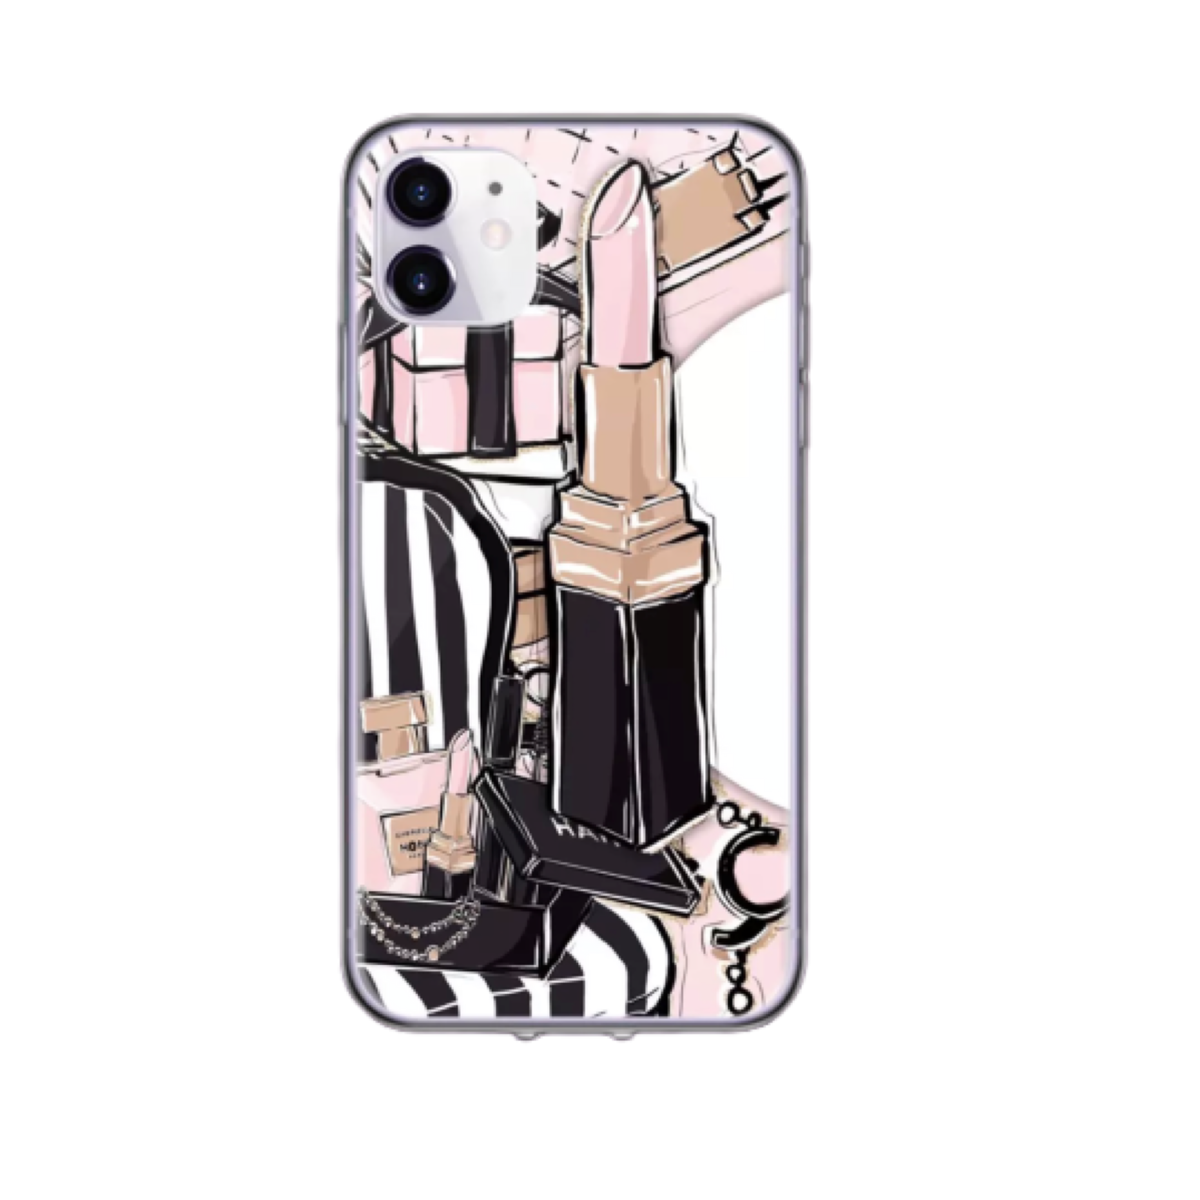 iPhone 11 Cellphone Case Makeup Theme Pro Max